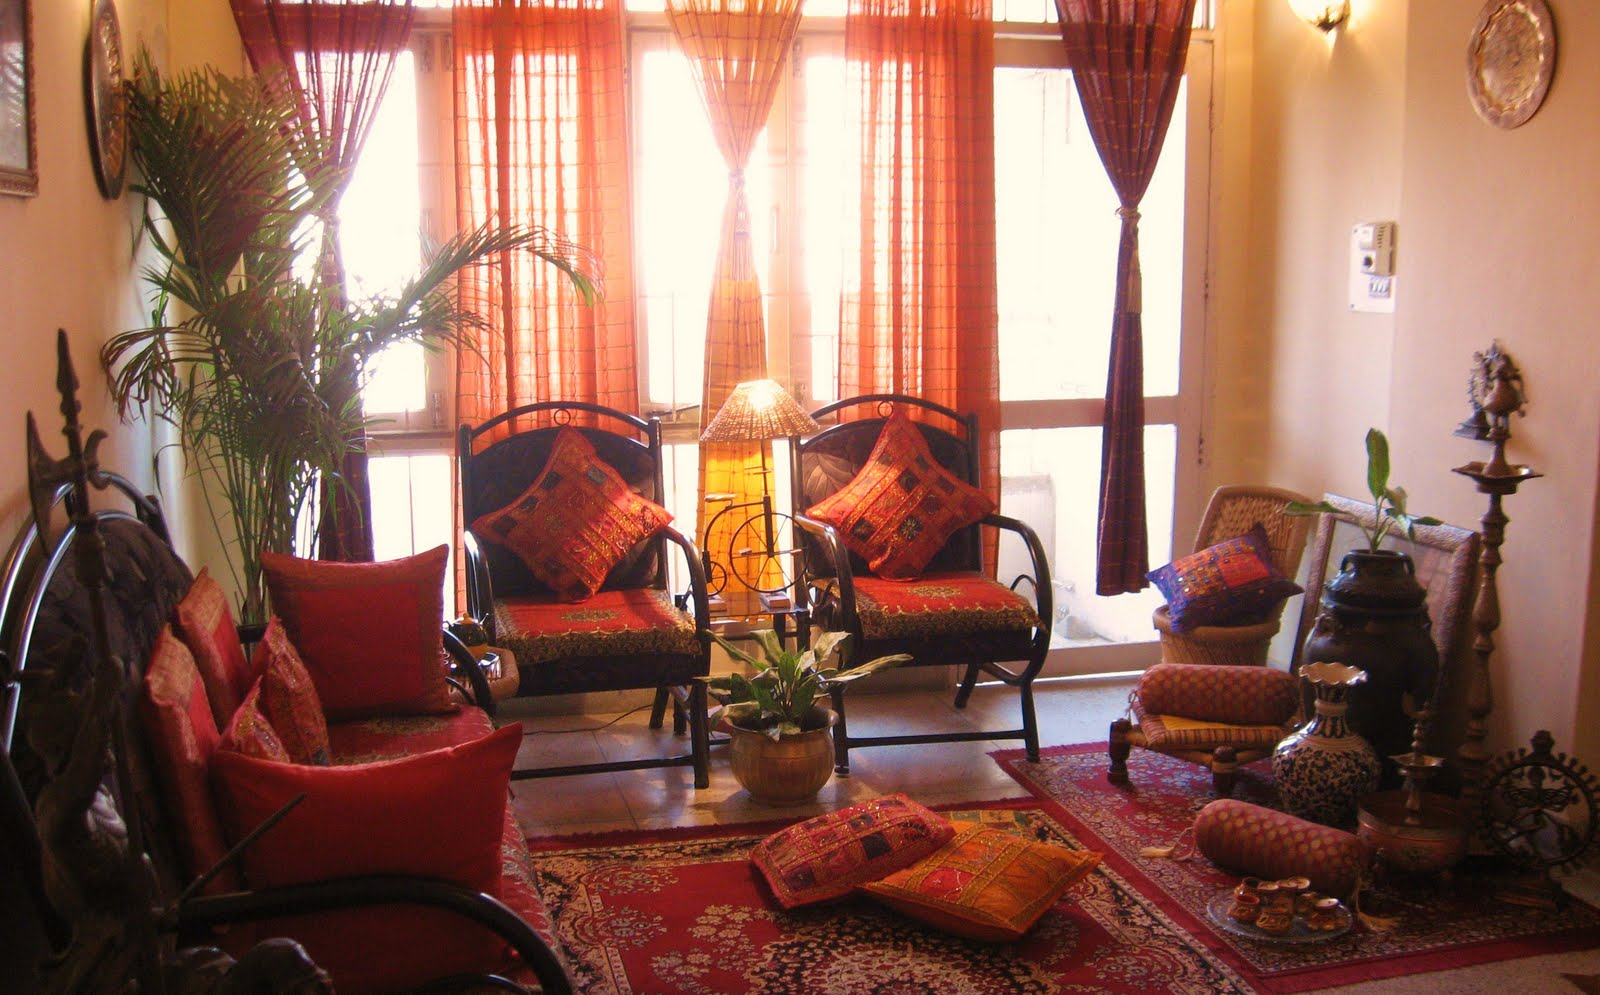 Indian Home Design: Ethnic Indian Decor: Co-Blogger Find Of This Month